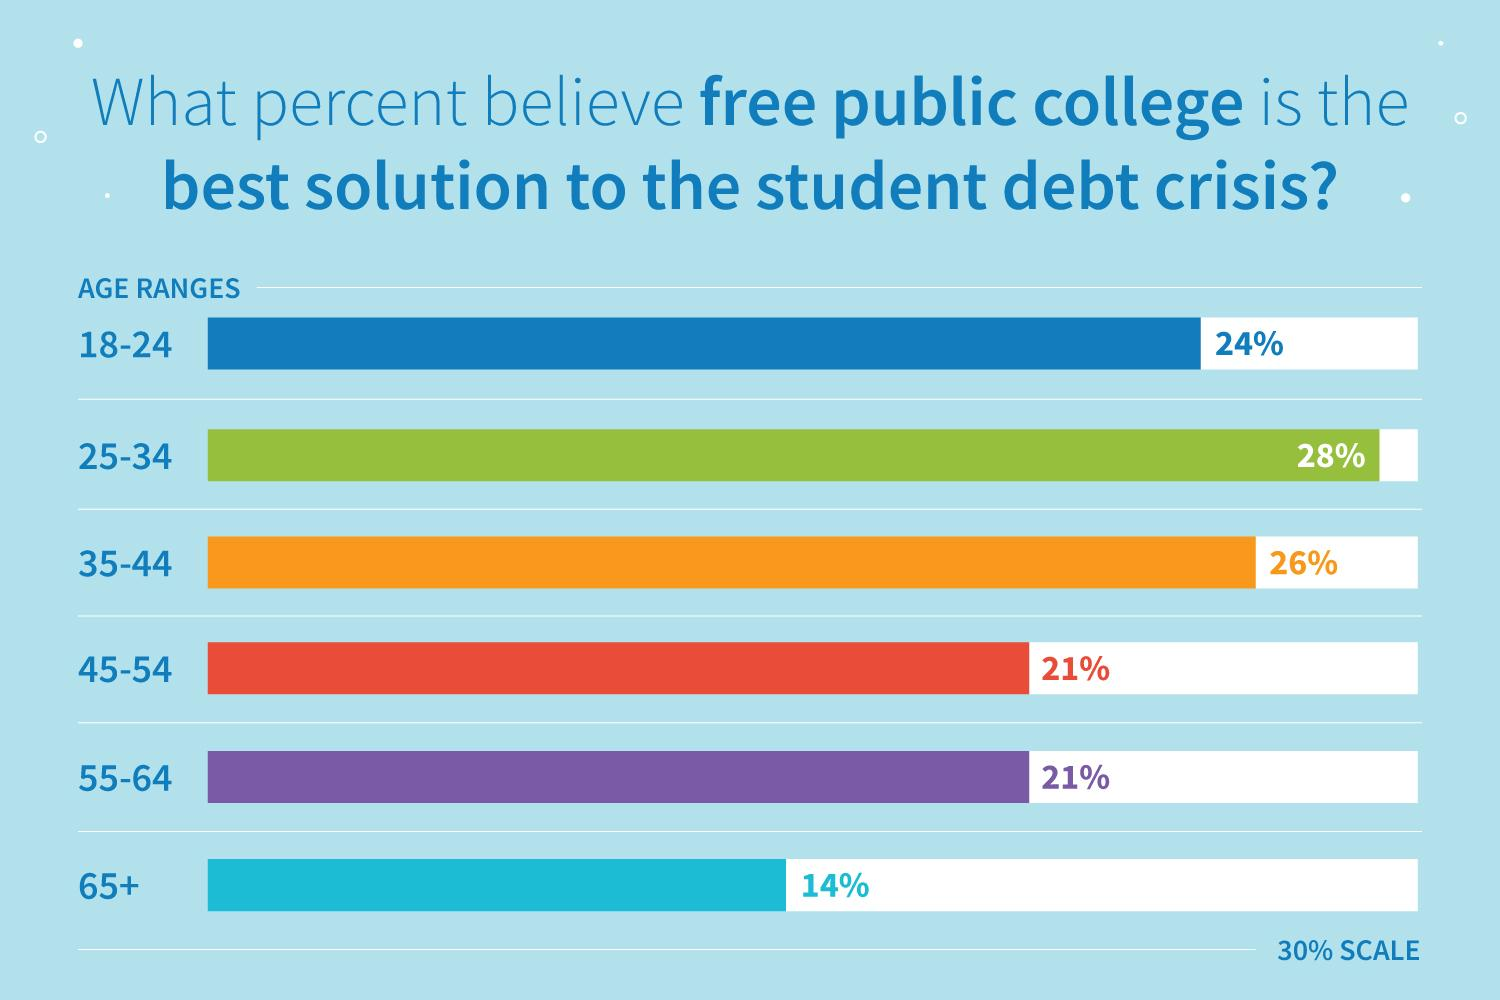 Survey results: what percent believe free public college is the best solution to the student debt crisis?